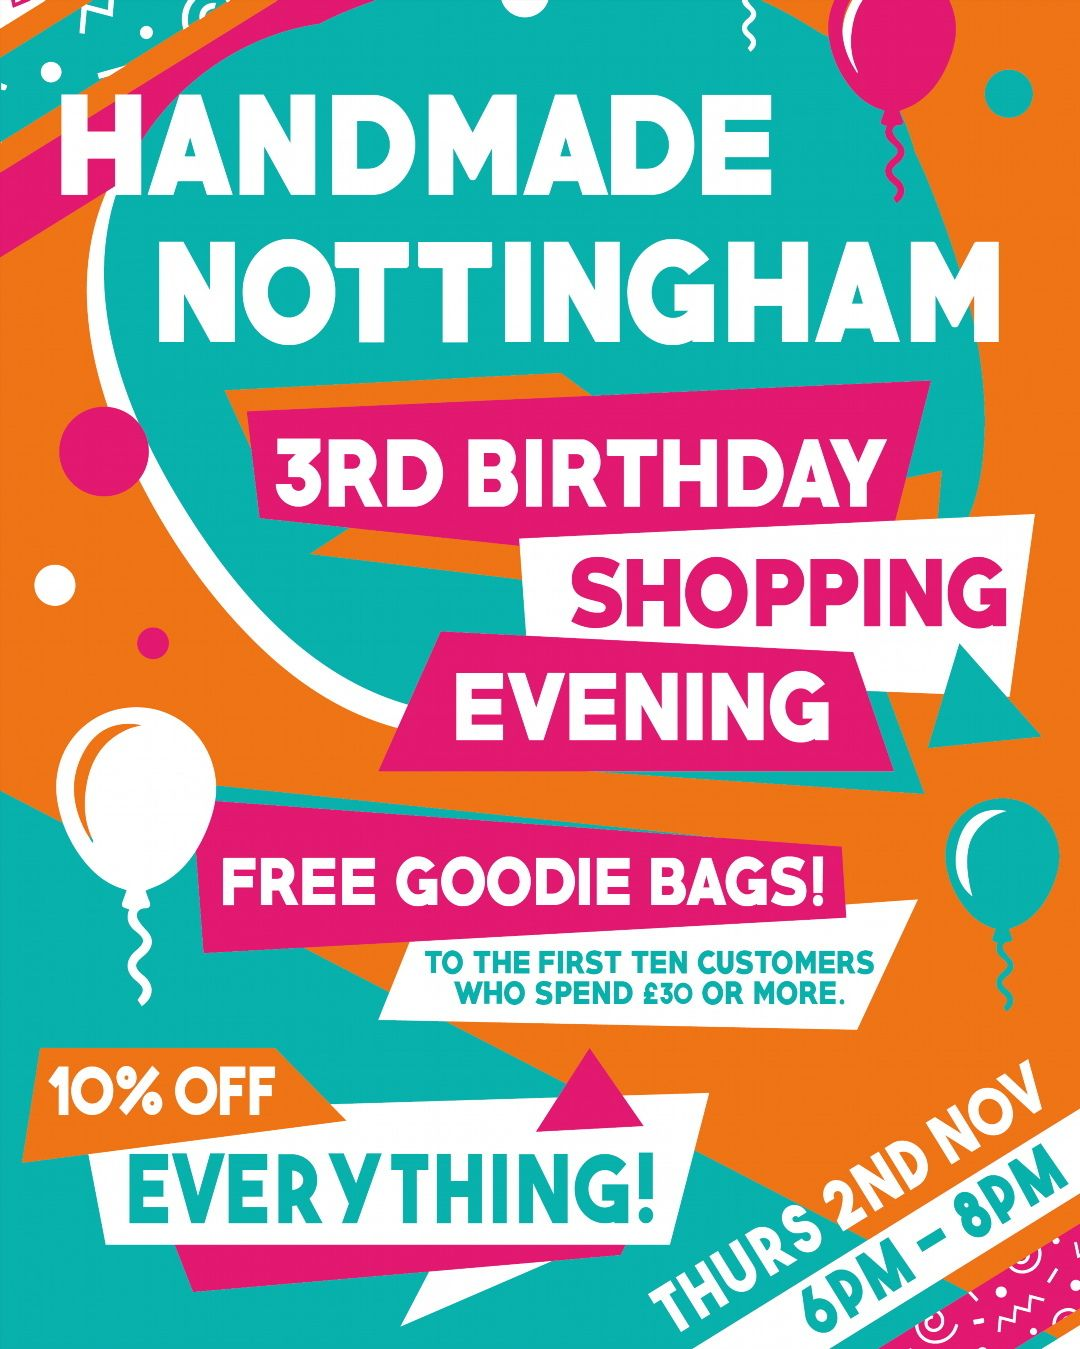 It's our Birthday next month! Come celebrate with us!  Perfect timing to start your Christmas shopping with 10% off everything AND goodie bags filled with treats from our amazing makers! . Poster designed by @fableandblack . . . #wearethree #shoppingevening #thirdbirthday #3rdbirthday #handmadenottingham #shopnotts #itsinnottingham #goodiebags #nottinghamcreatives #handmadeisbest #designermakers #supportindependent #nottingham #giftshop #shoplocal #shopnotts #lovenotts #nottingham